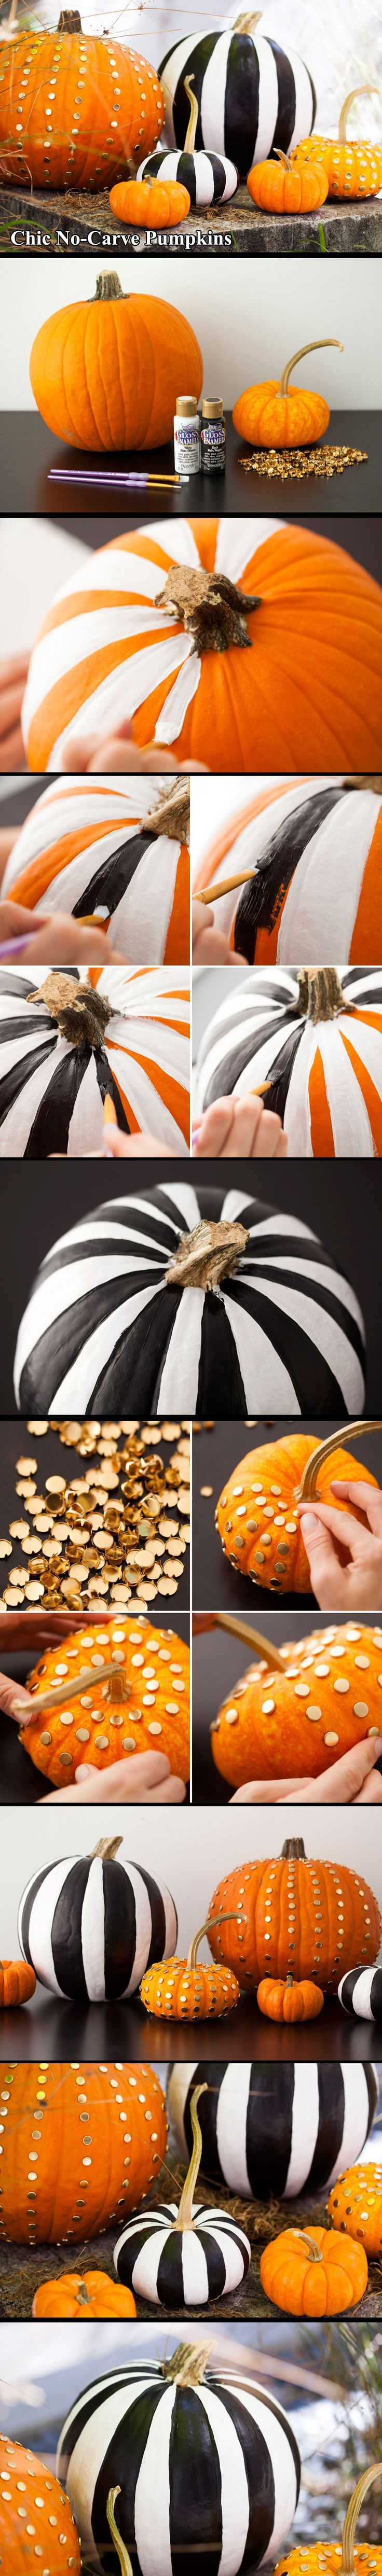 Clever No Carve/Painted Pumpkin Ideas for Kids | Ninja turtle ...